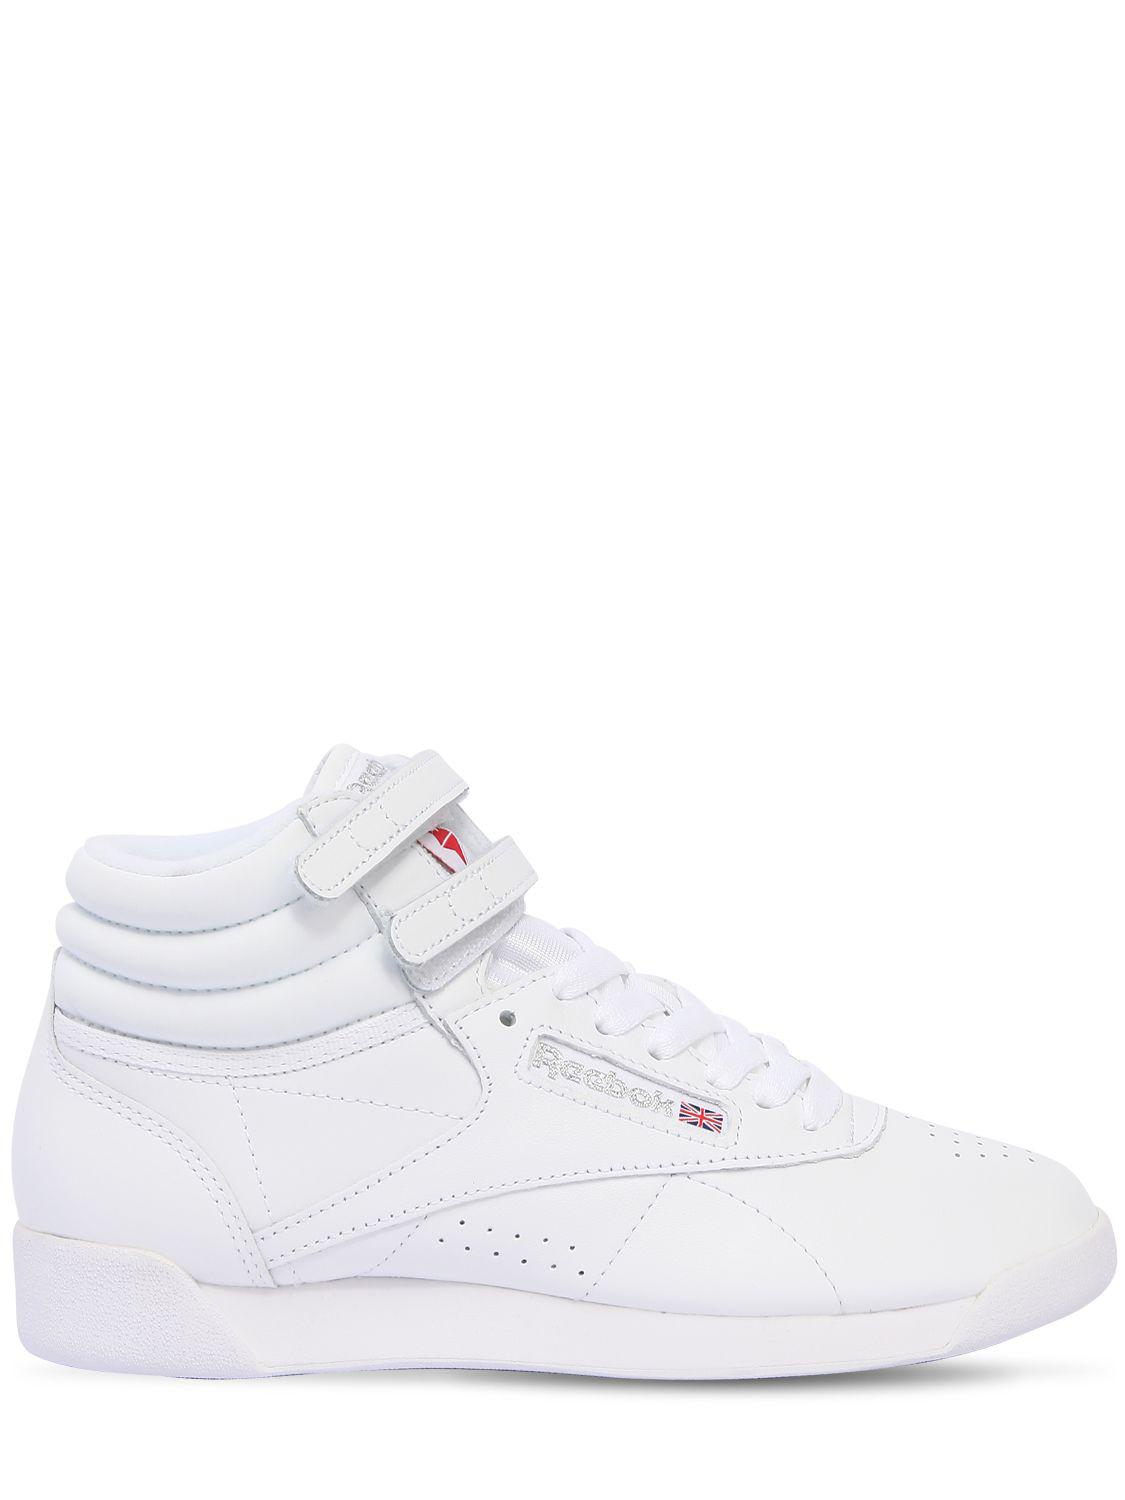 78c2d2b68e0 Reebok Women s Freestyle Leather High Top Sneakers in White - Save 2 ...